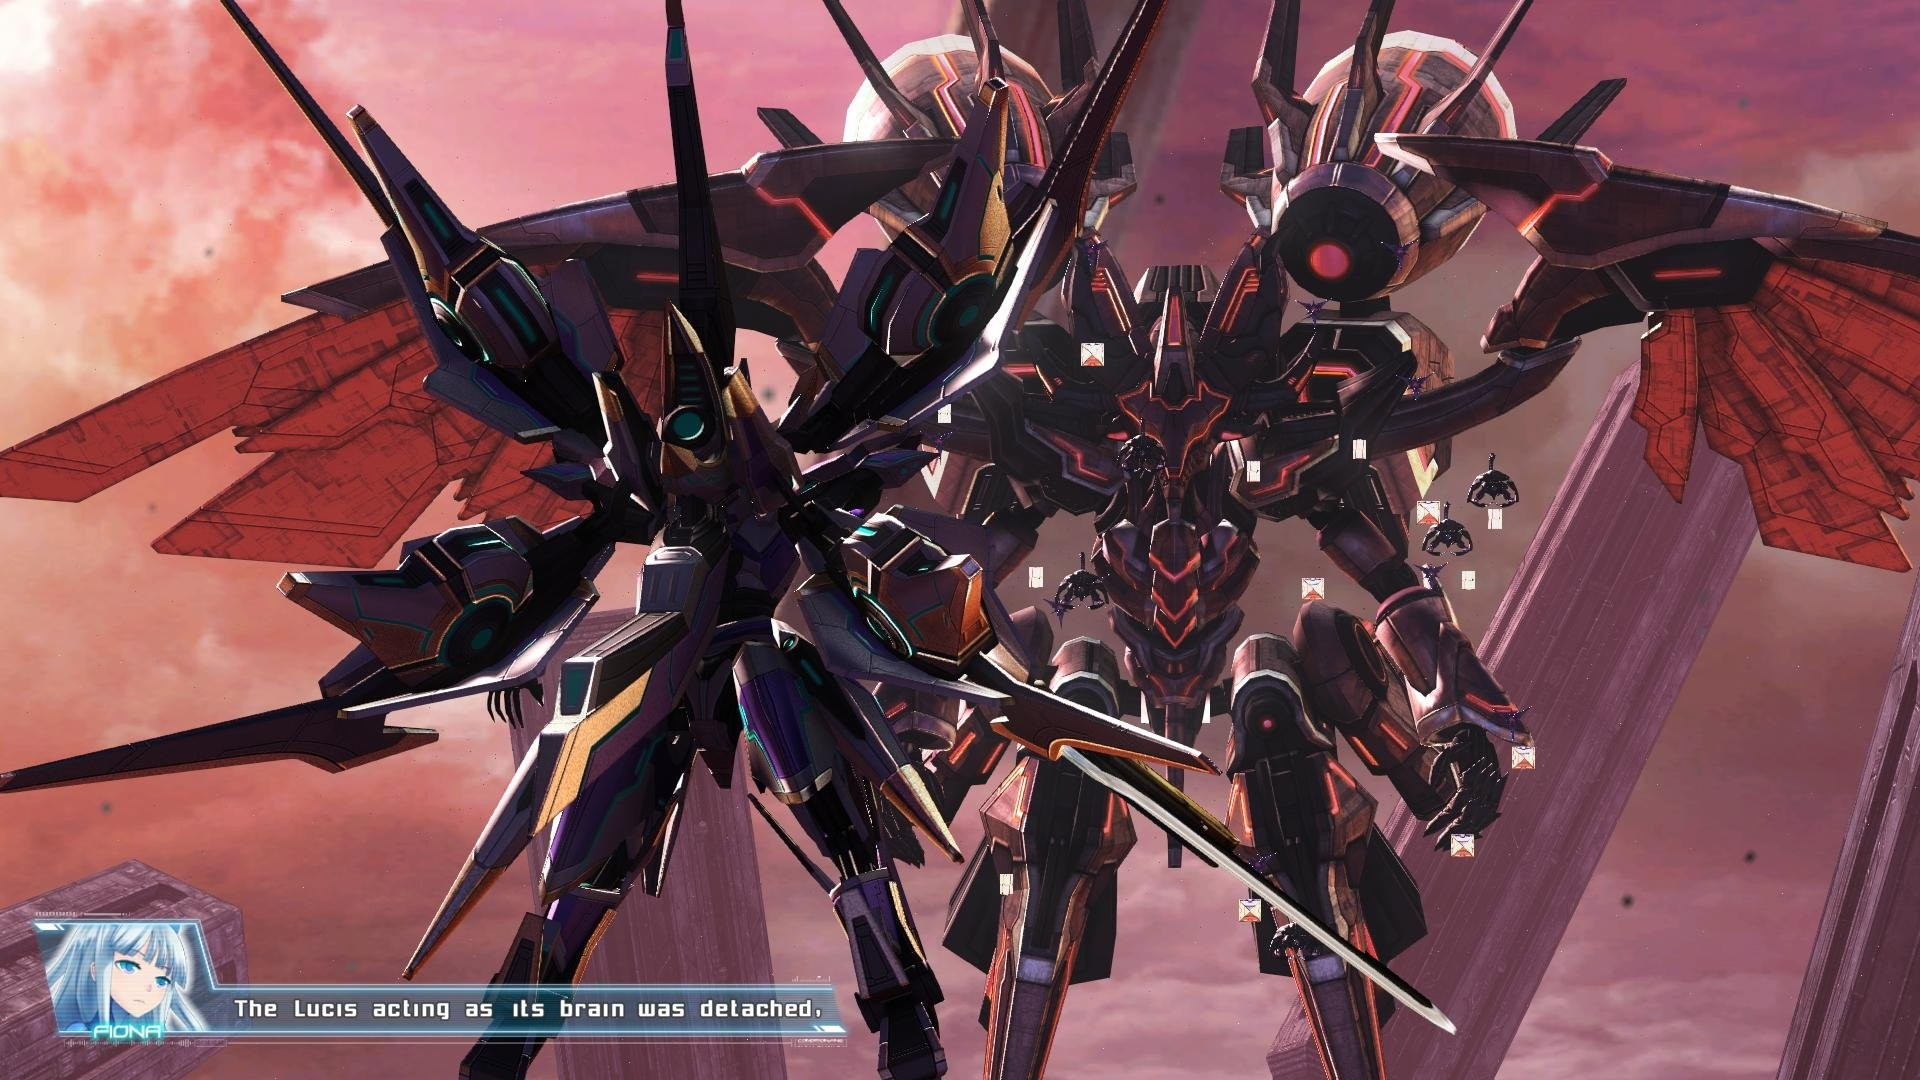 ASTEBREED sci-fi anime shooter fantasy action fighting mecha poster  wallpaper     833285   WallpaperUP